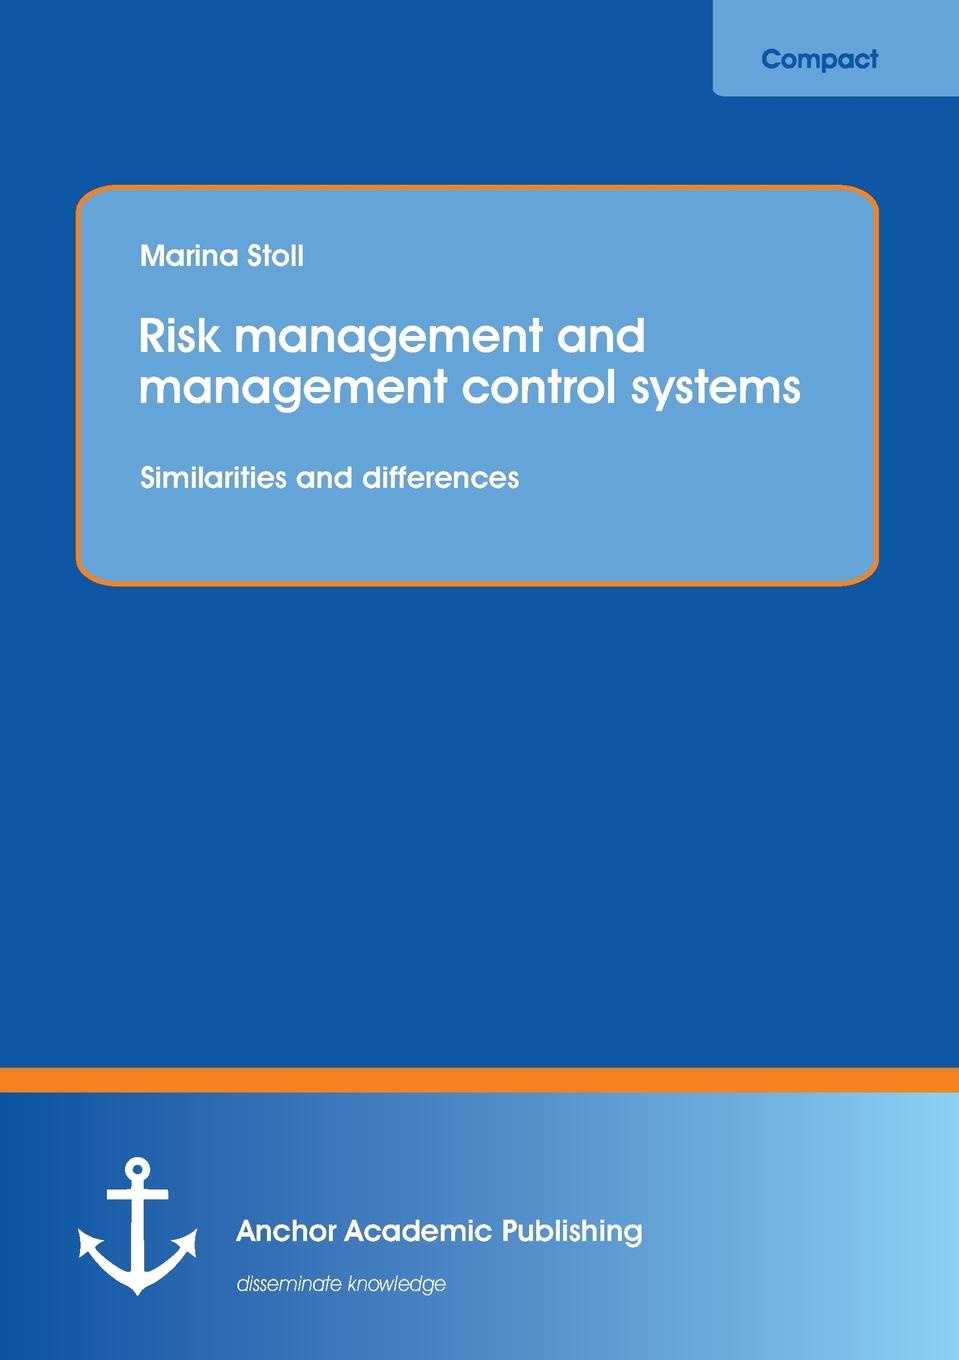 Marina Stoll Risk management and management control systems surafel mamo woldegbrael flood forecasting conterol and modeling for flood risk management systems